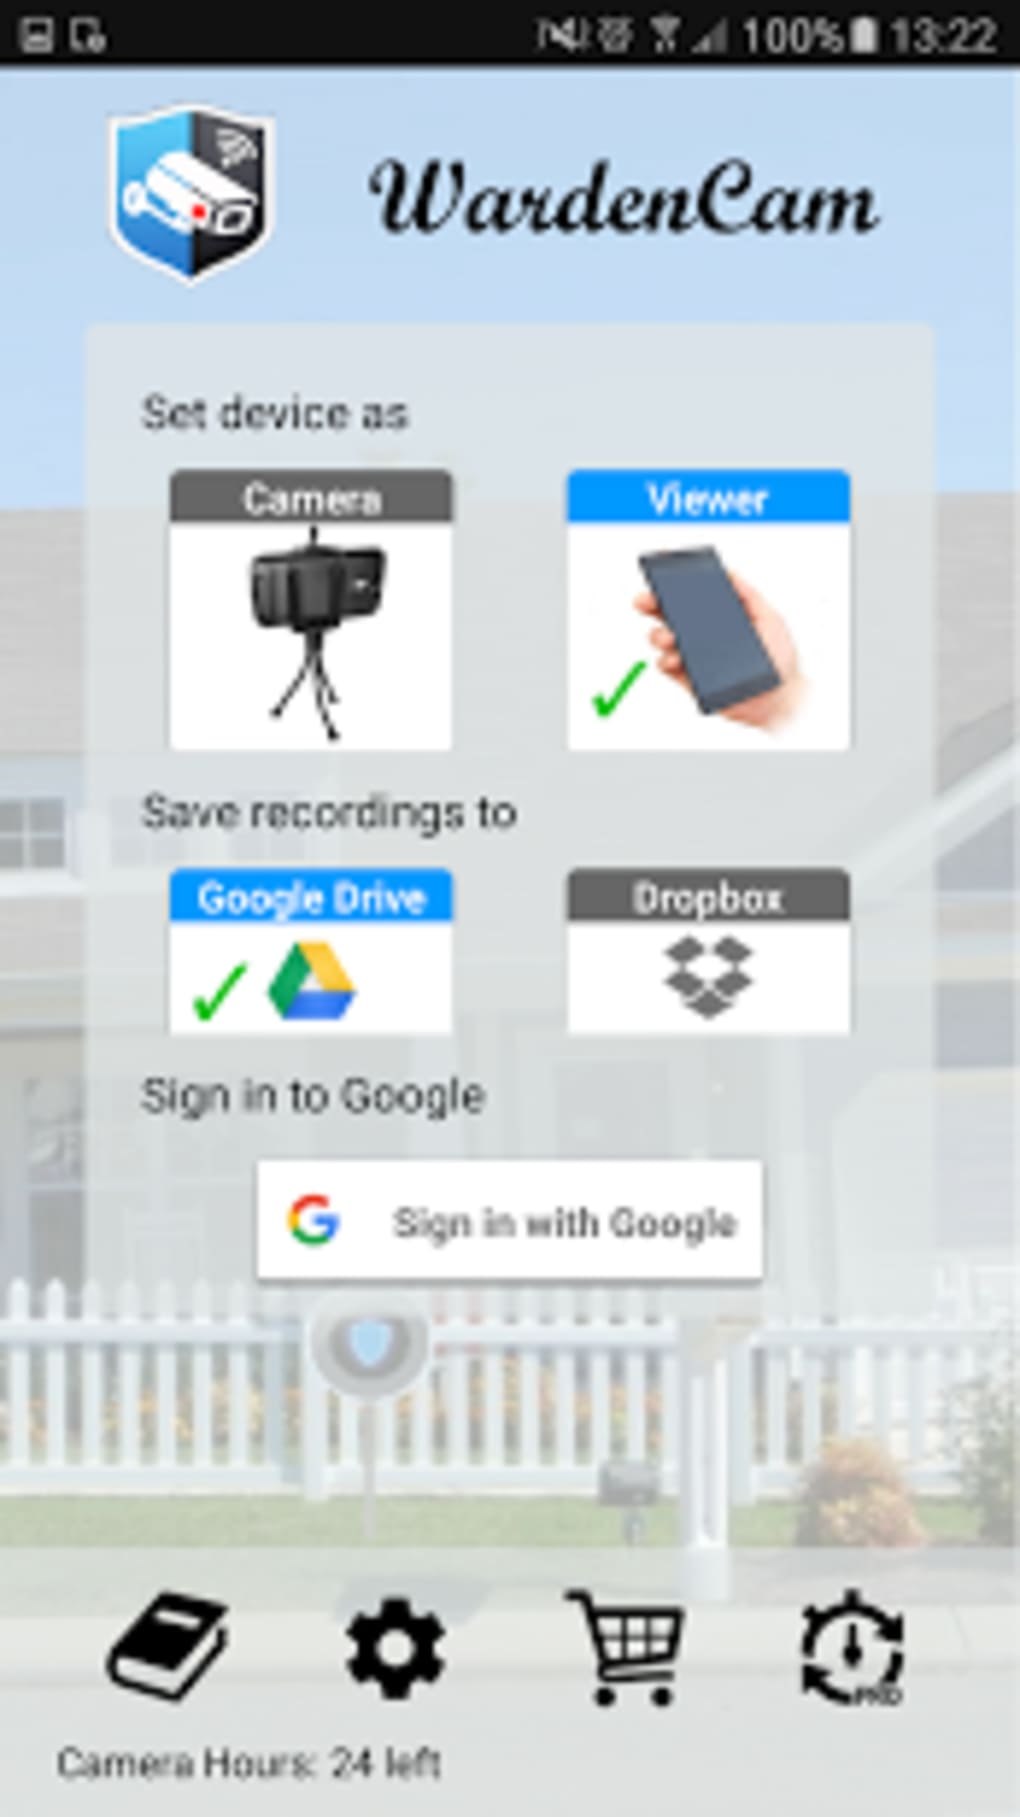 Home Security Camera WardenCam for Android - Download